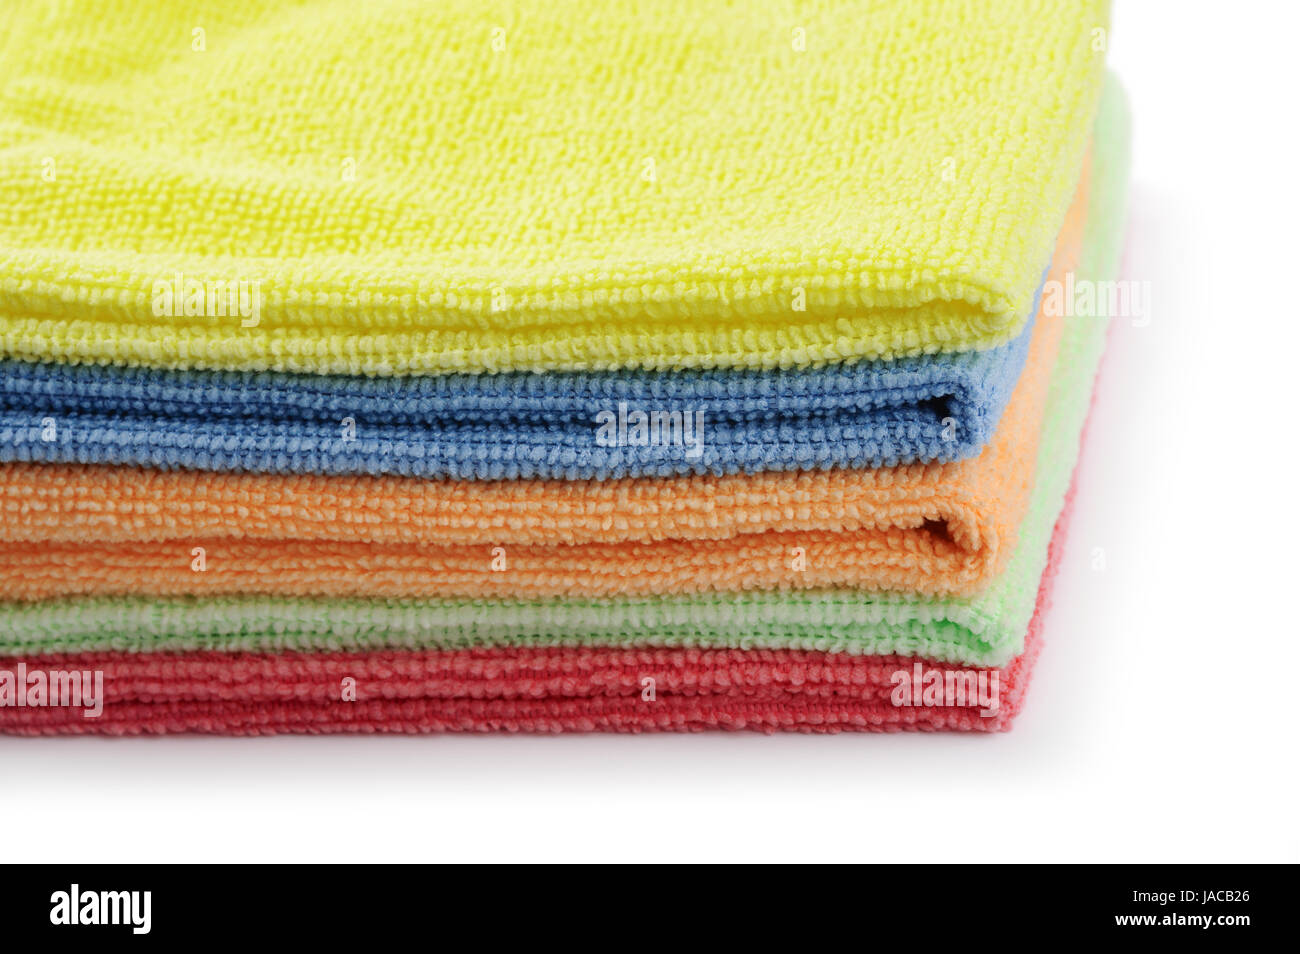 Close up of stacked colorful microfiber cloths - Stock Image